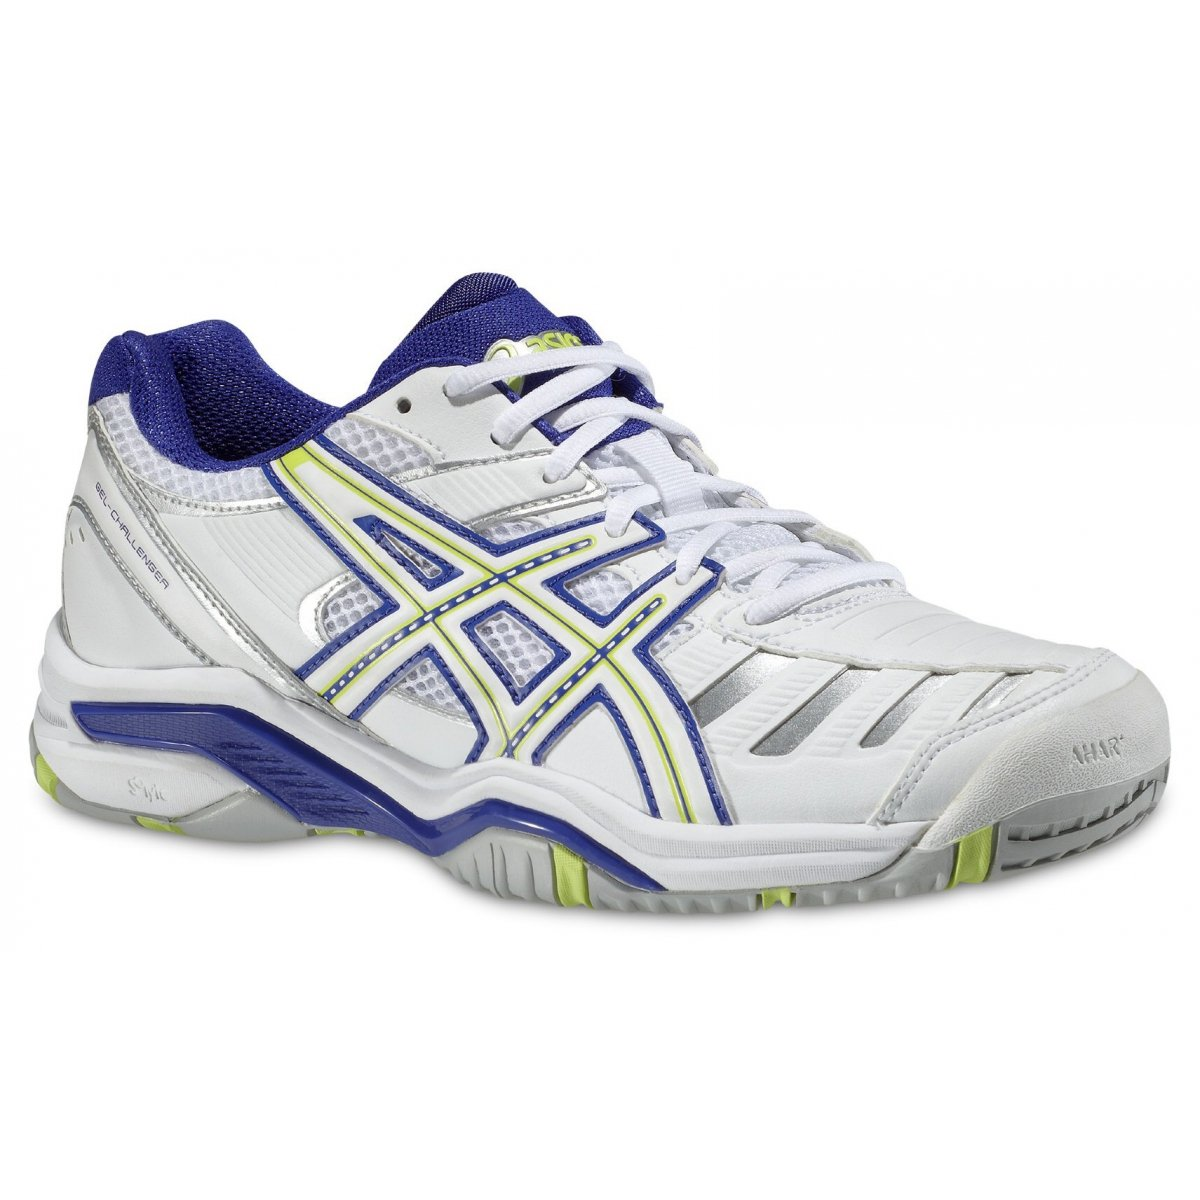 asics gel challenger 9 weiss blau tennisschuhe damen versandkostenfrei online bestellen. Black Bedroom Furniture Sets. Home Design Ideas